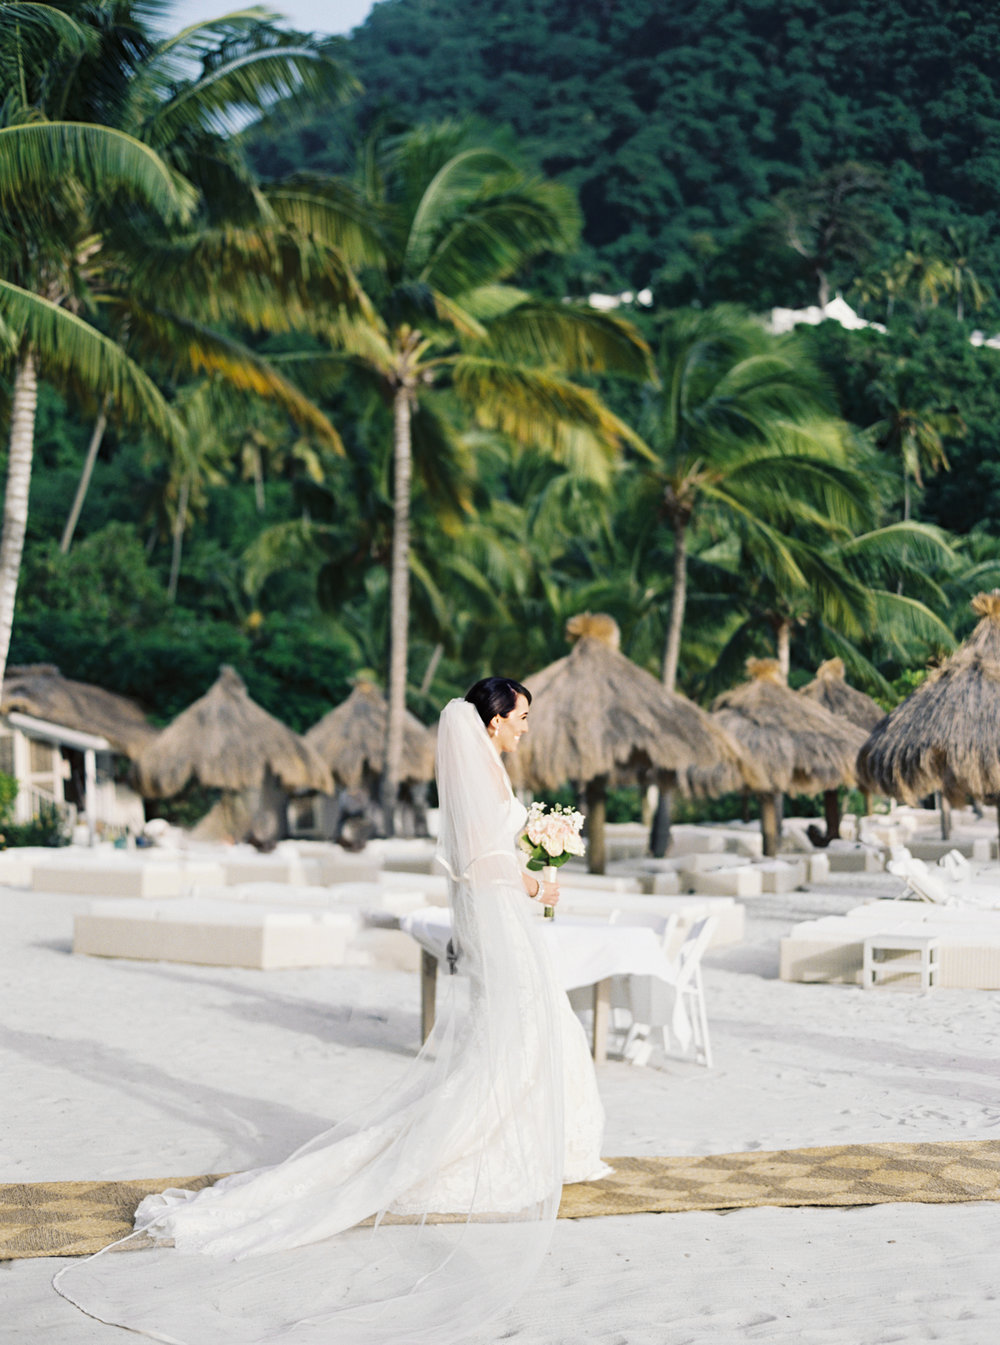 072Delmary's & Daniel : ELOPEMENT : ST. LUCIA : CARIBBEAN : PHOTO & VIDEO : DESTINATION : OUTLIVE CREATIVE : 2016 .jpg